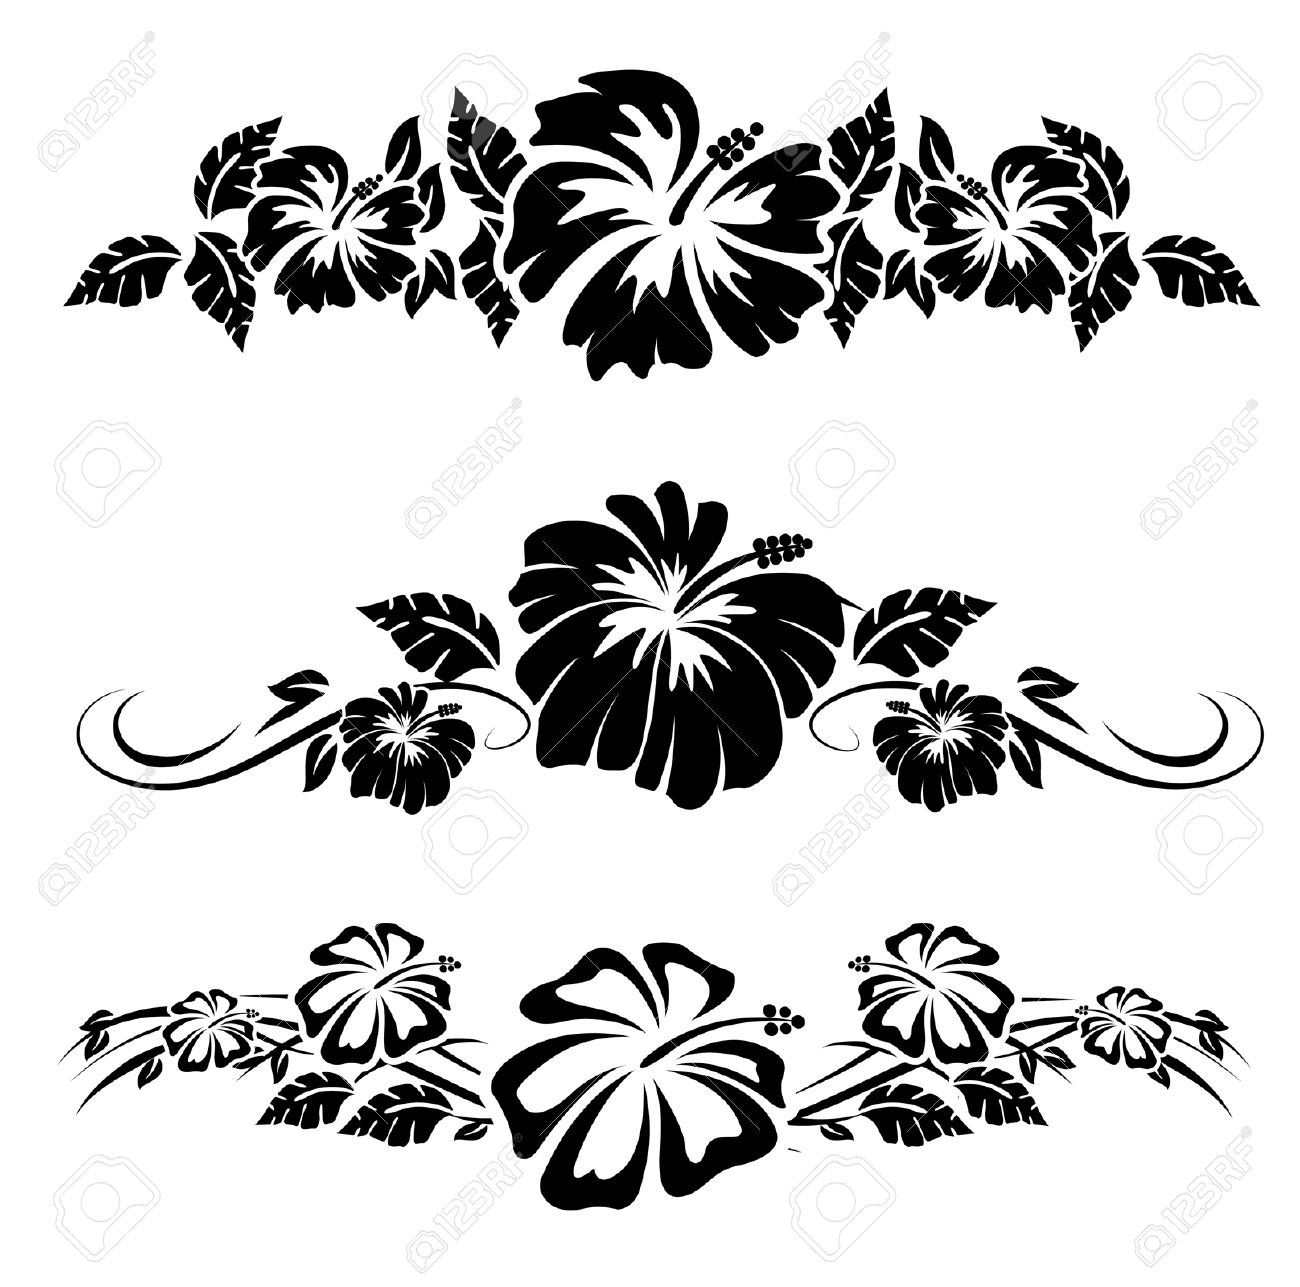 Hawaiian flower stencils comousar hawaiian flower stencils hawaiian tropical flowers izmirmasajfo